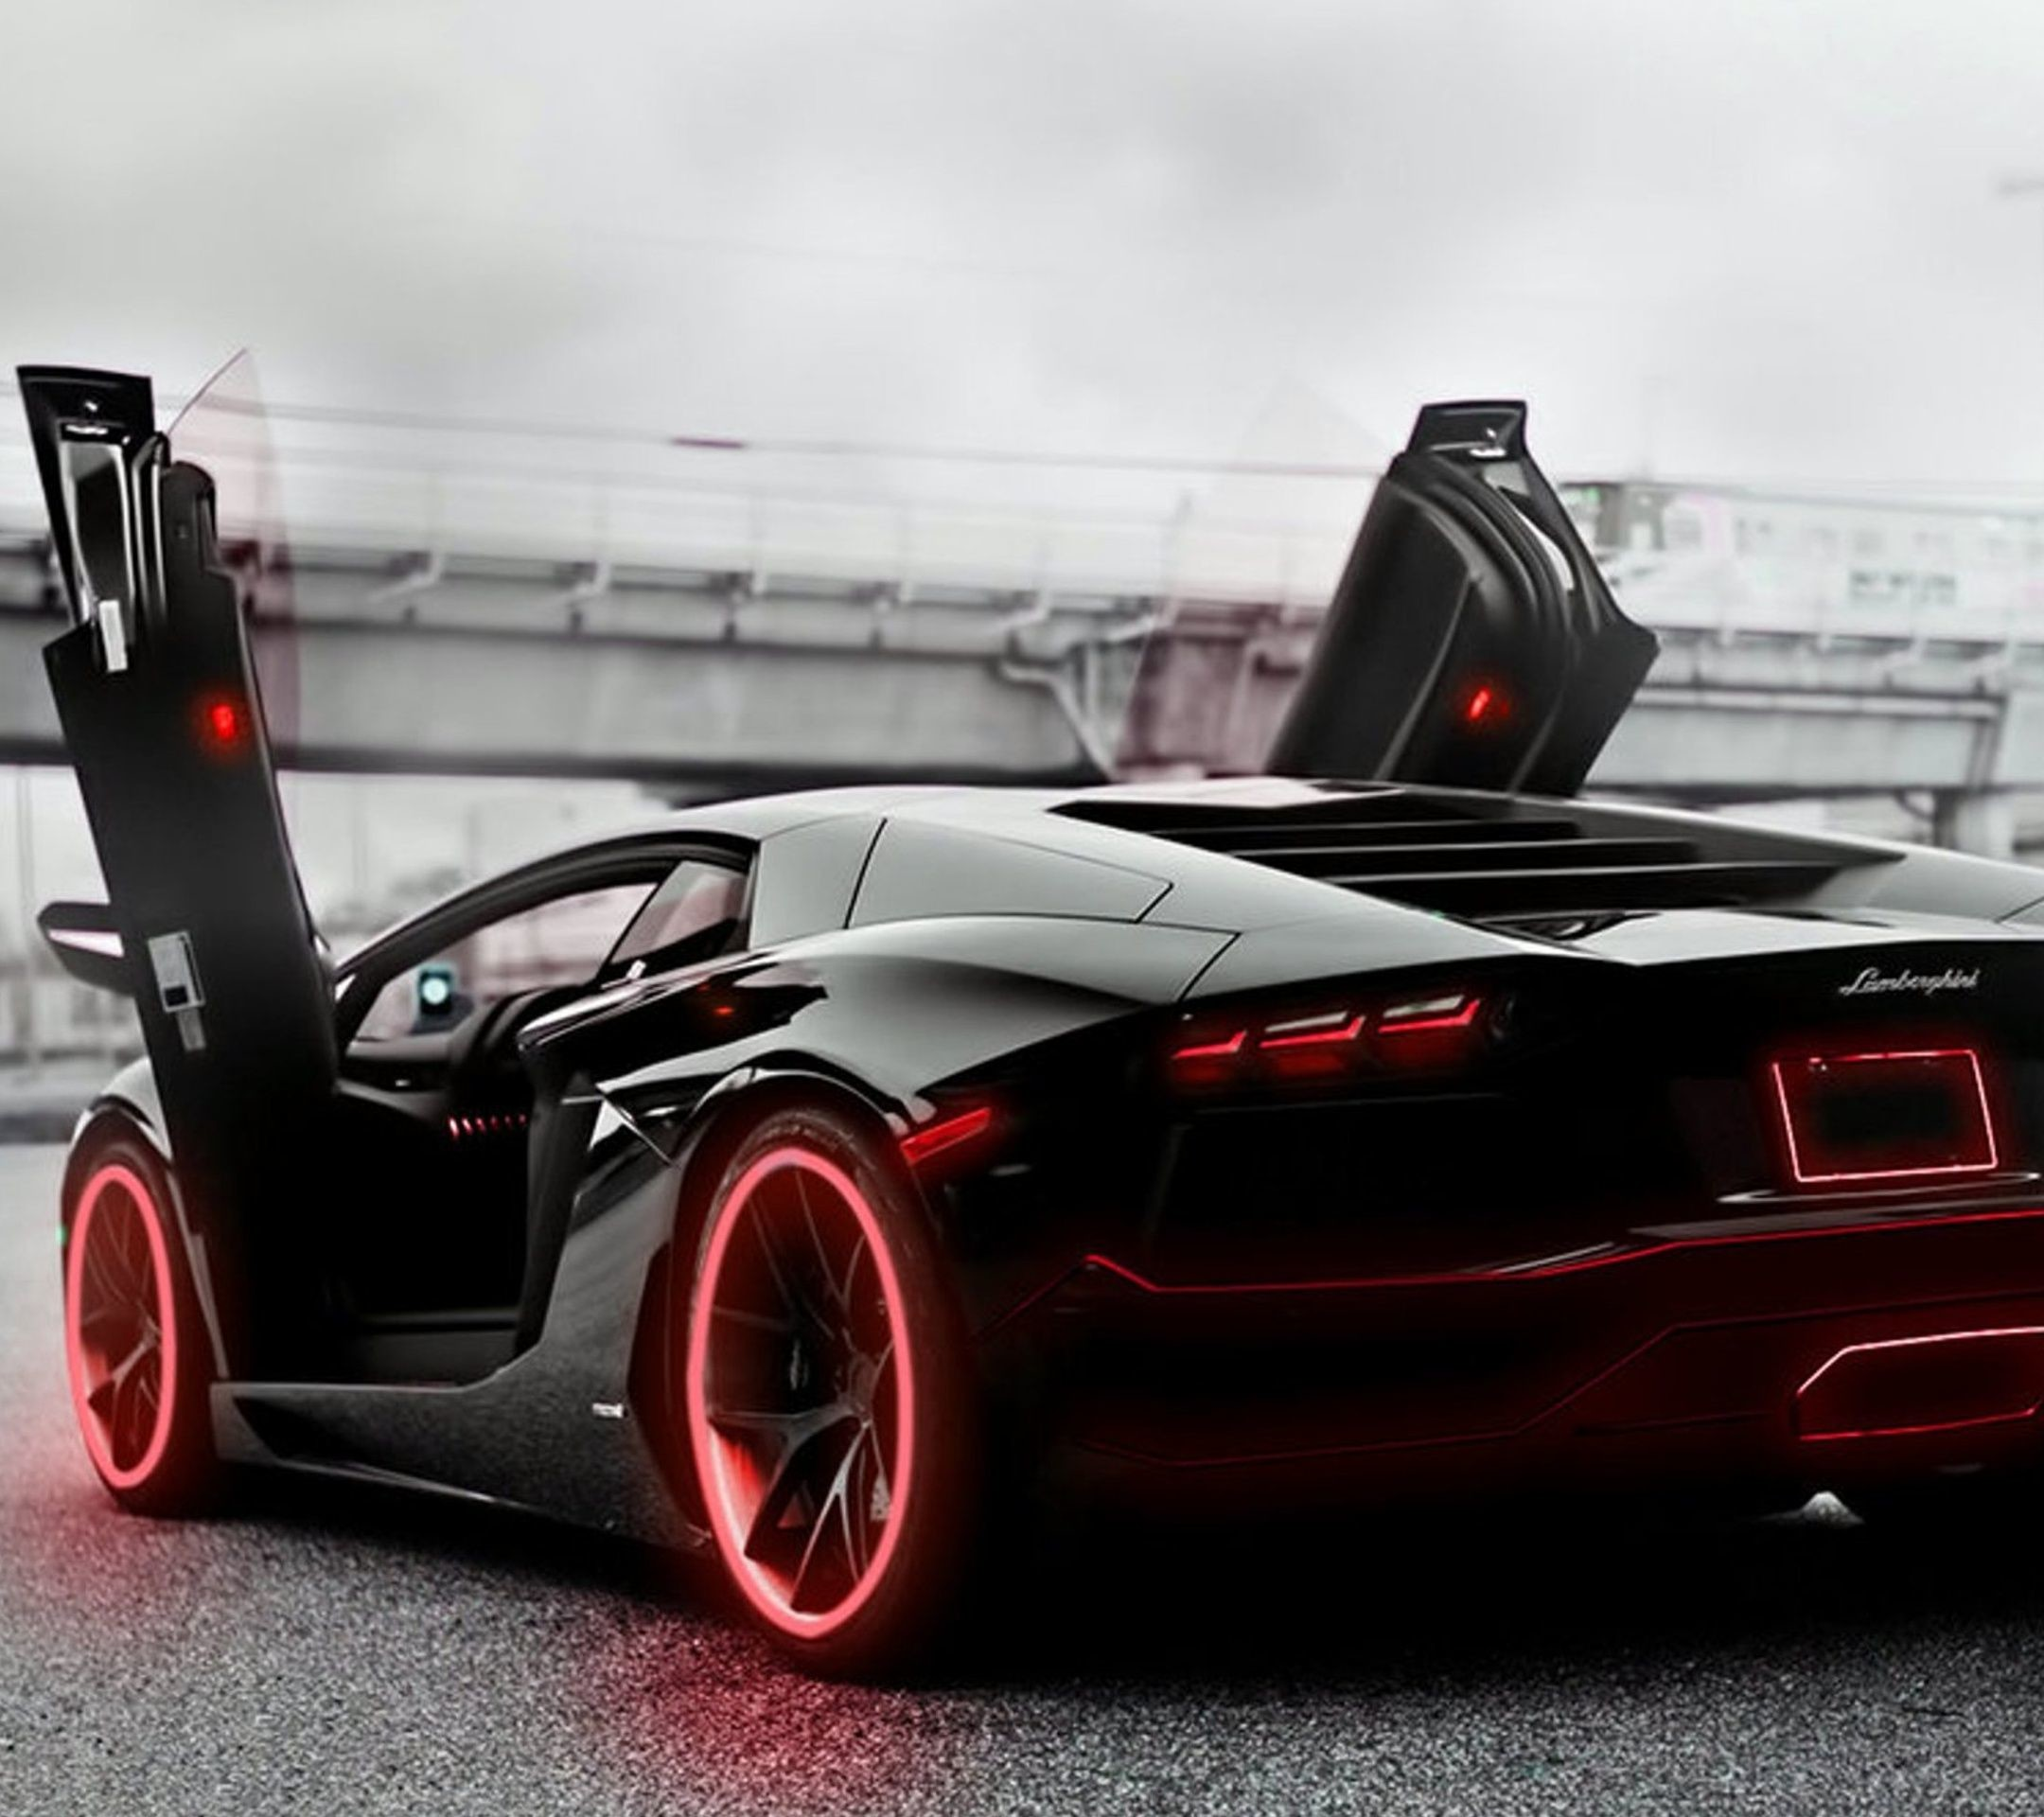 Cars Hd Wallpapers For Android Phones: Millionaire Wallpapers (81+ Images